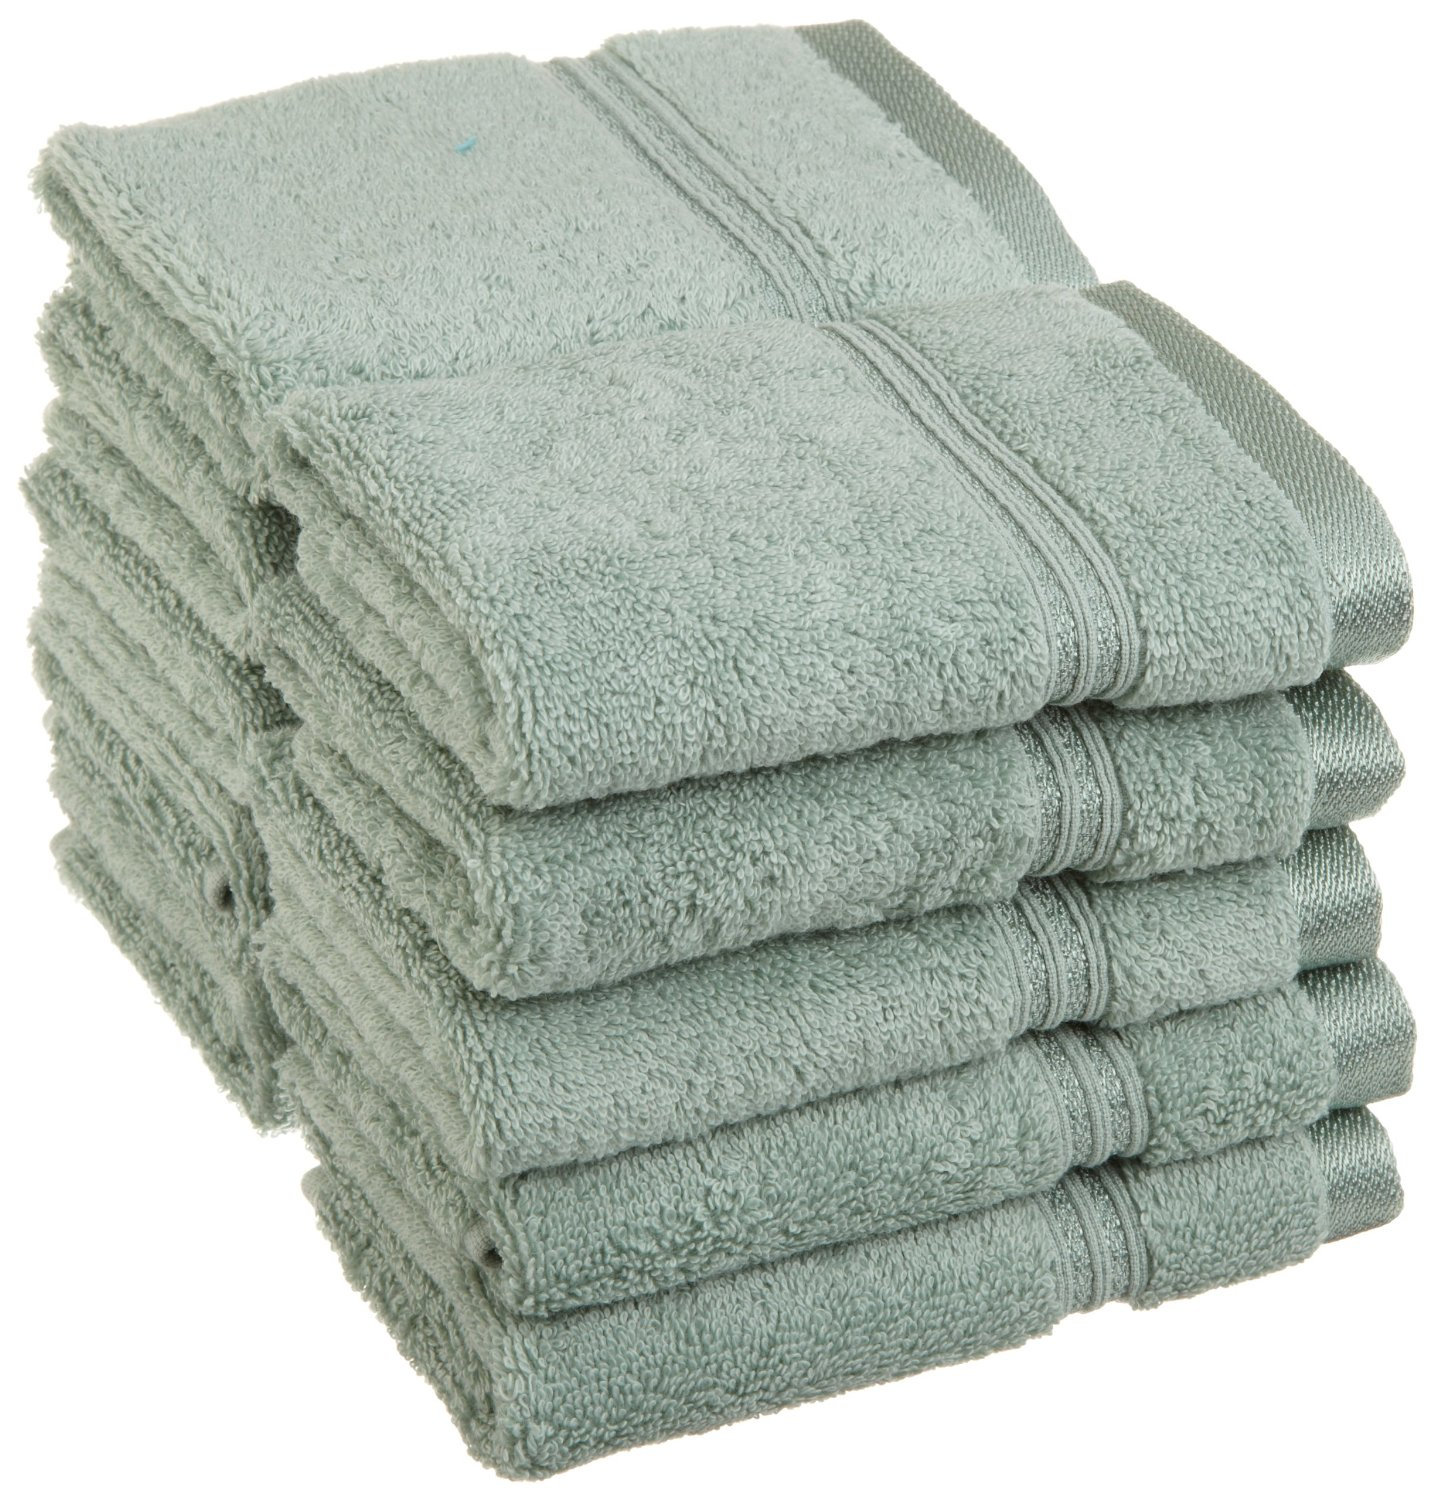 GoLinens: Luxury Ten (10) piece Face / Wash Towel Set. 600 GSM 100% Egyptian Cotton Towel Set. at Sears.com